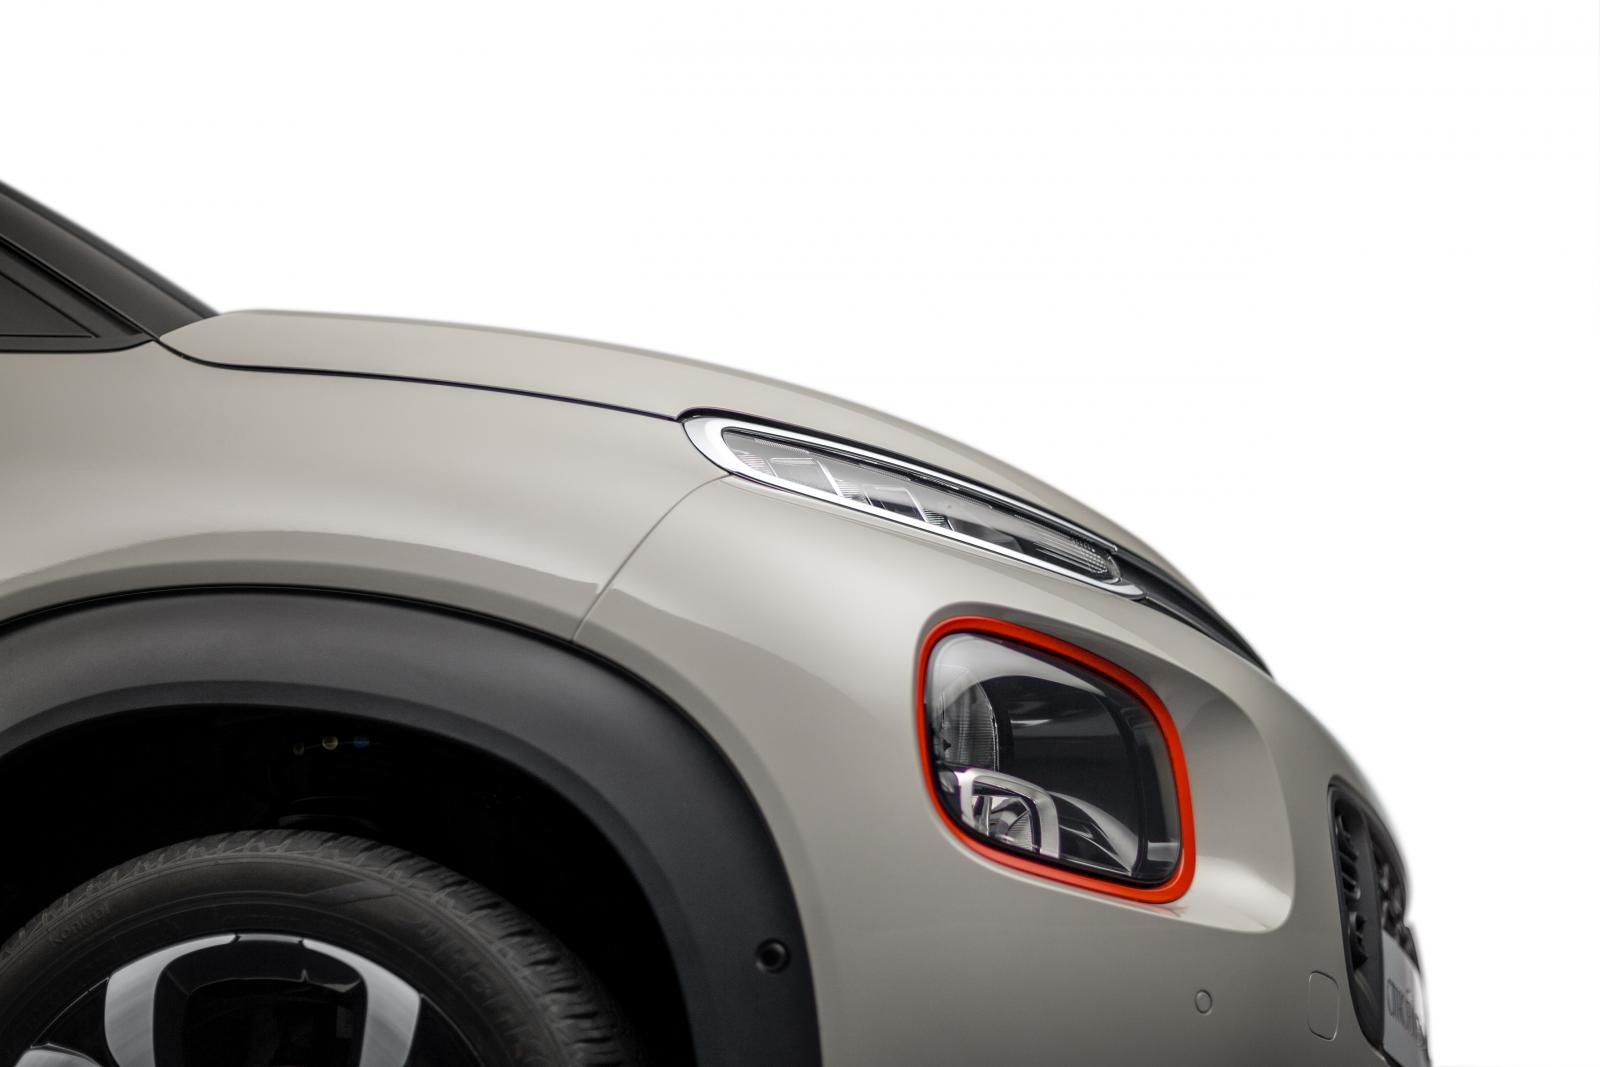 SUV Compact C3 Aircross - perfil frontal